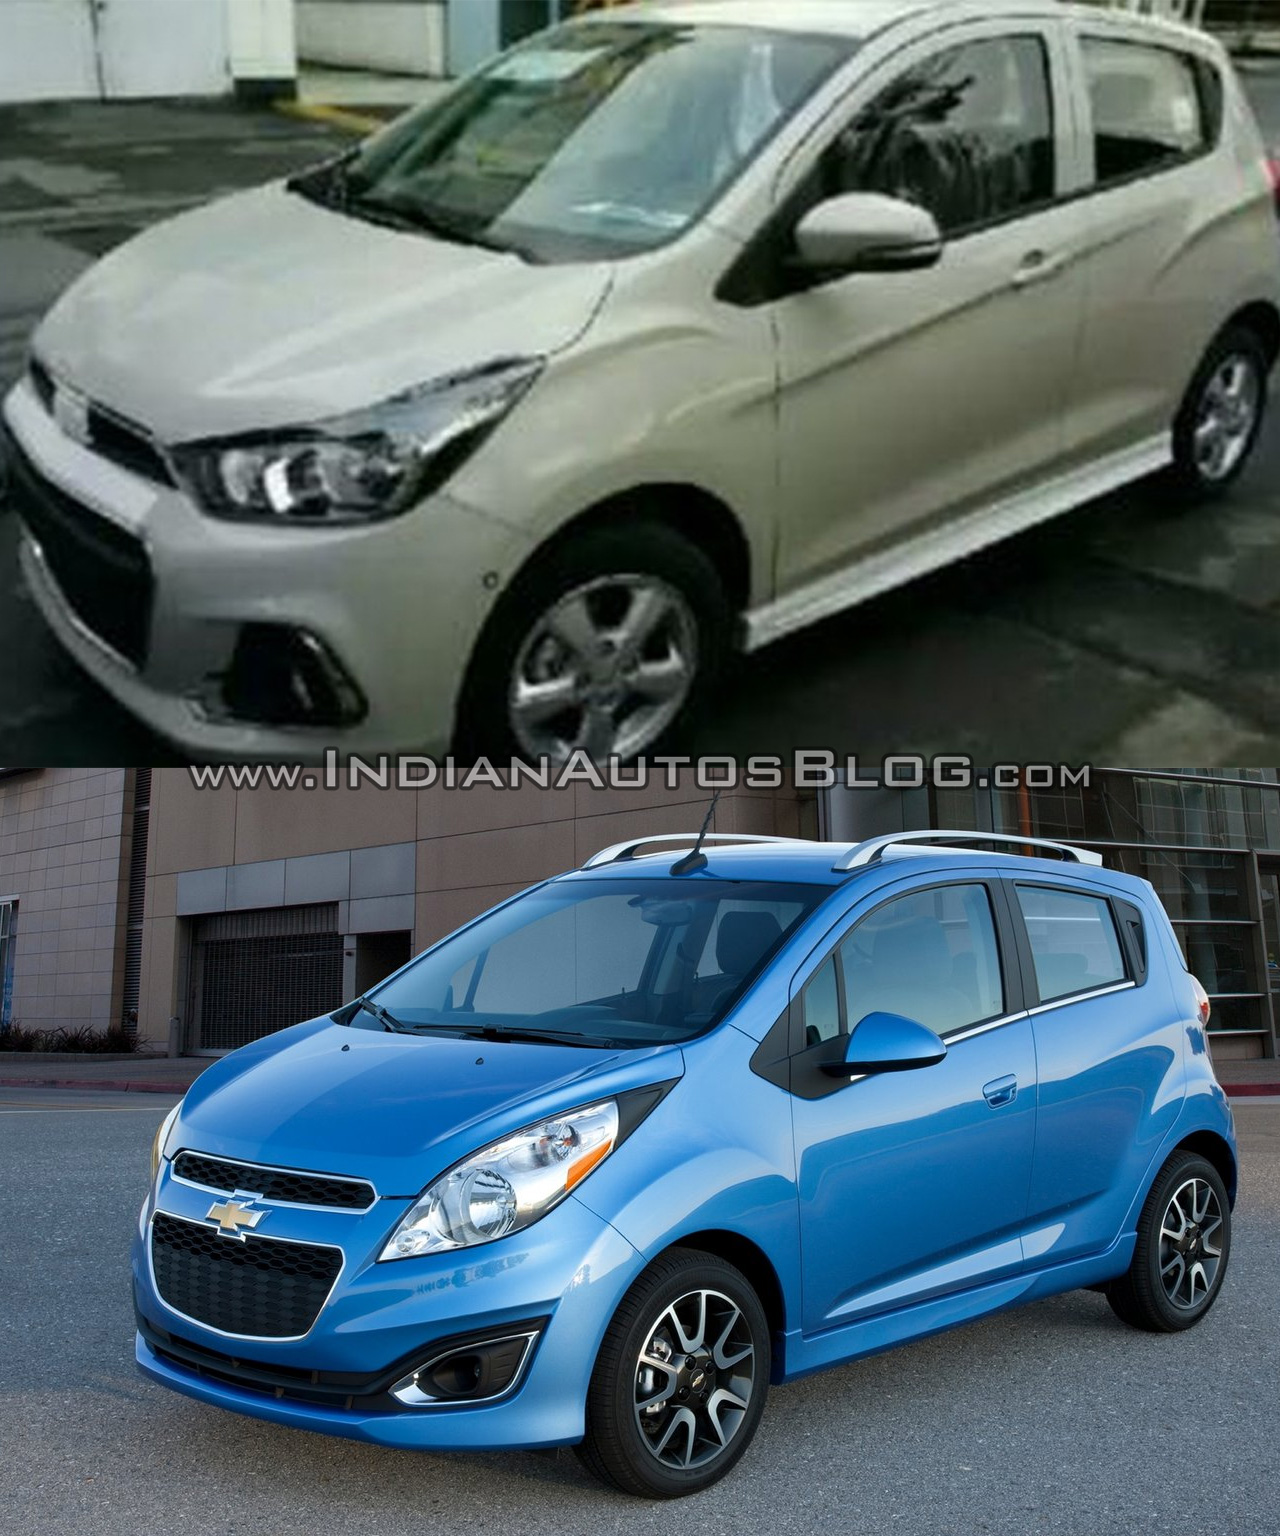 Chevrolet Spark 2016 Old Vs New Photo Gallery India